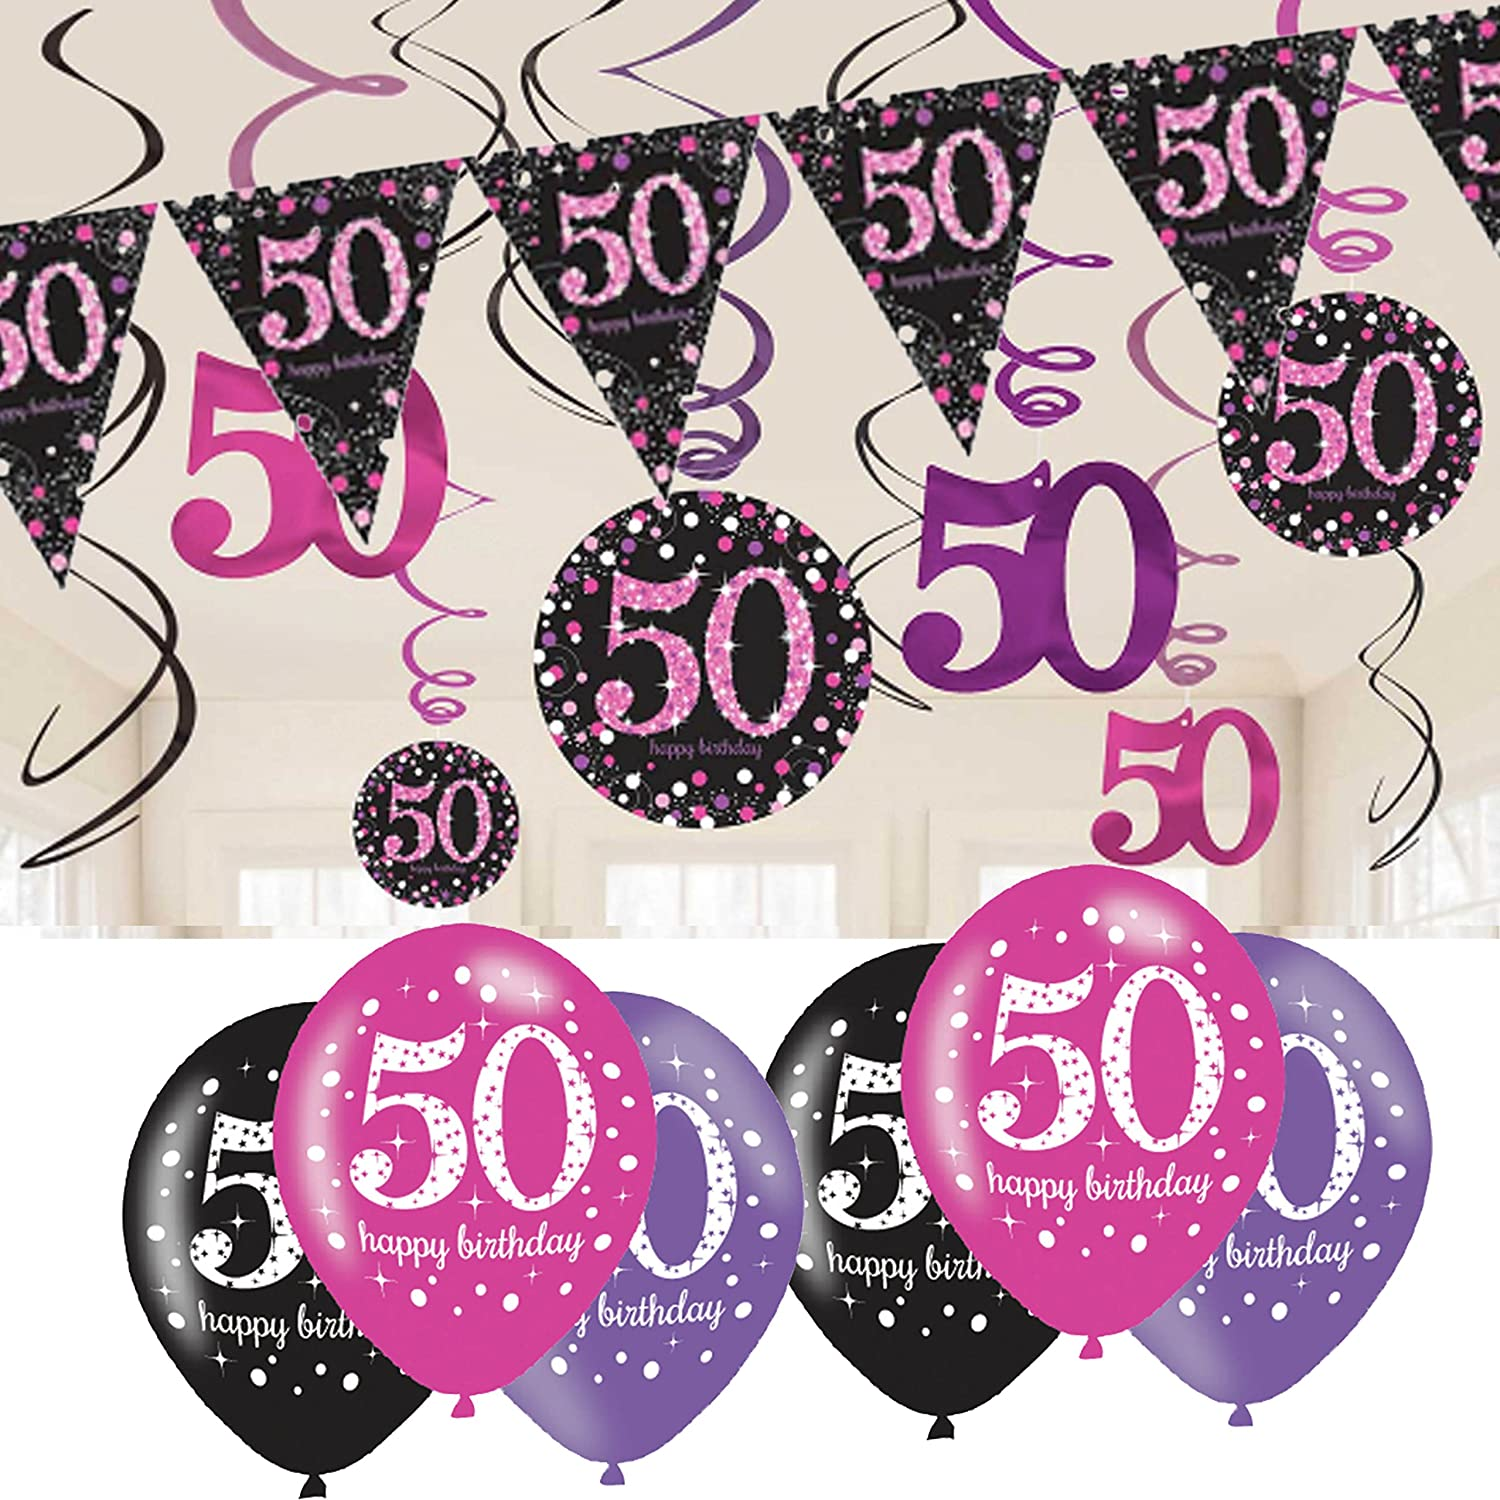 50th Birthday Decorations Pink Bunting Balloons Hanging